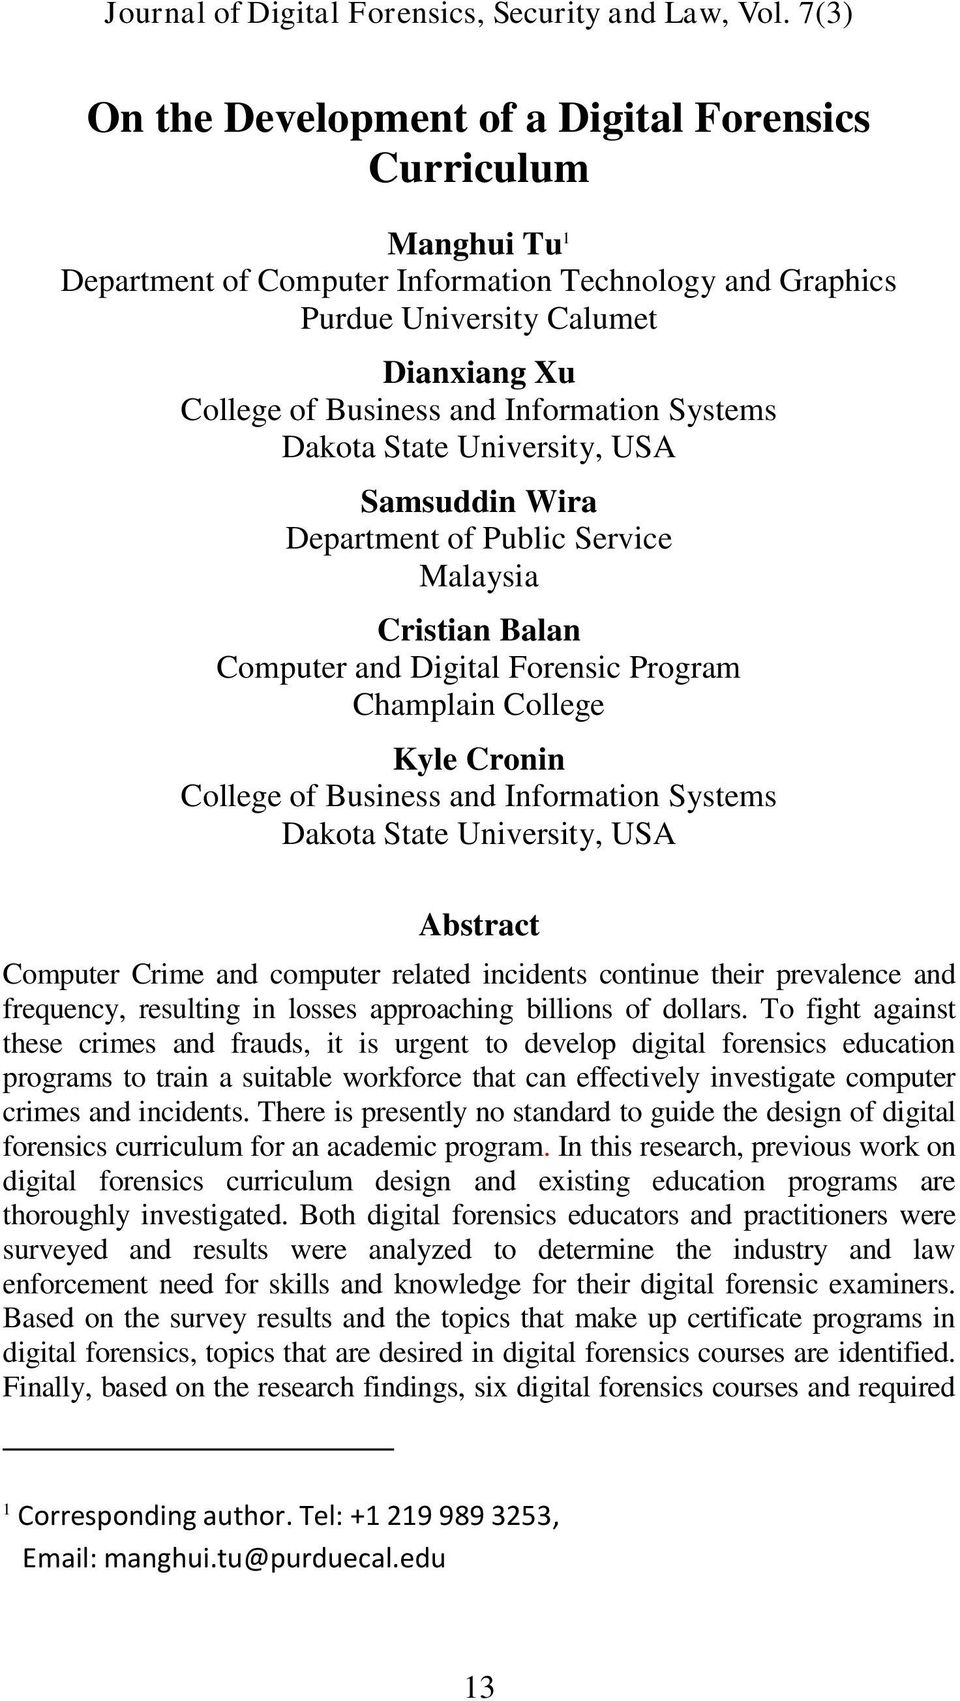 Information Systems Dakota State University, USA Abstract Computer Crime and computer related incidents continue their prevalence and frequency, resulting in losses approaching billions of dollars.